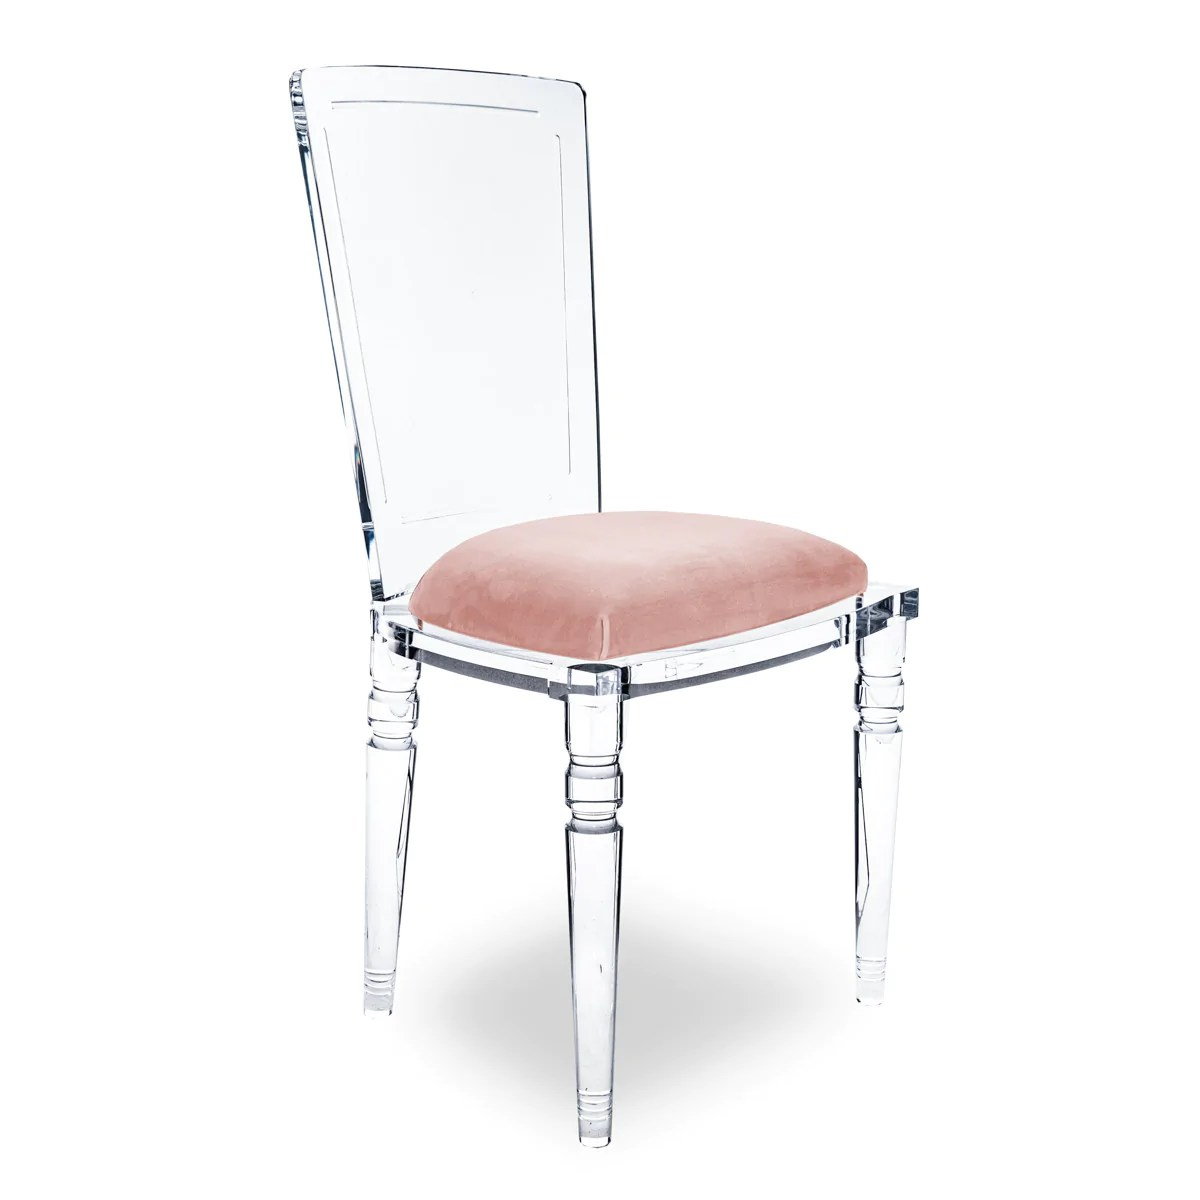 Lucite Chair Juliette Chair Armless Lucite Chairs With Padded Seat Modshop